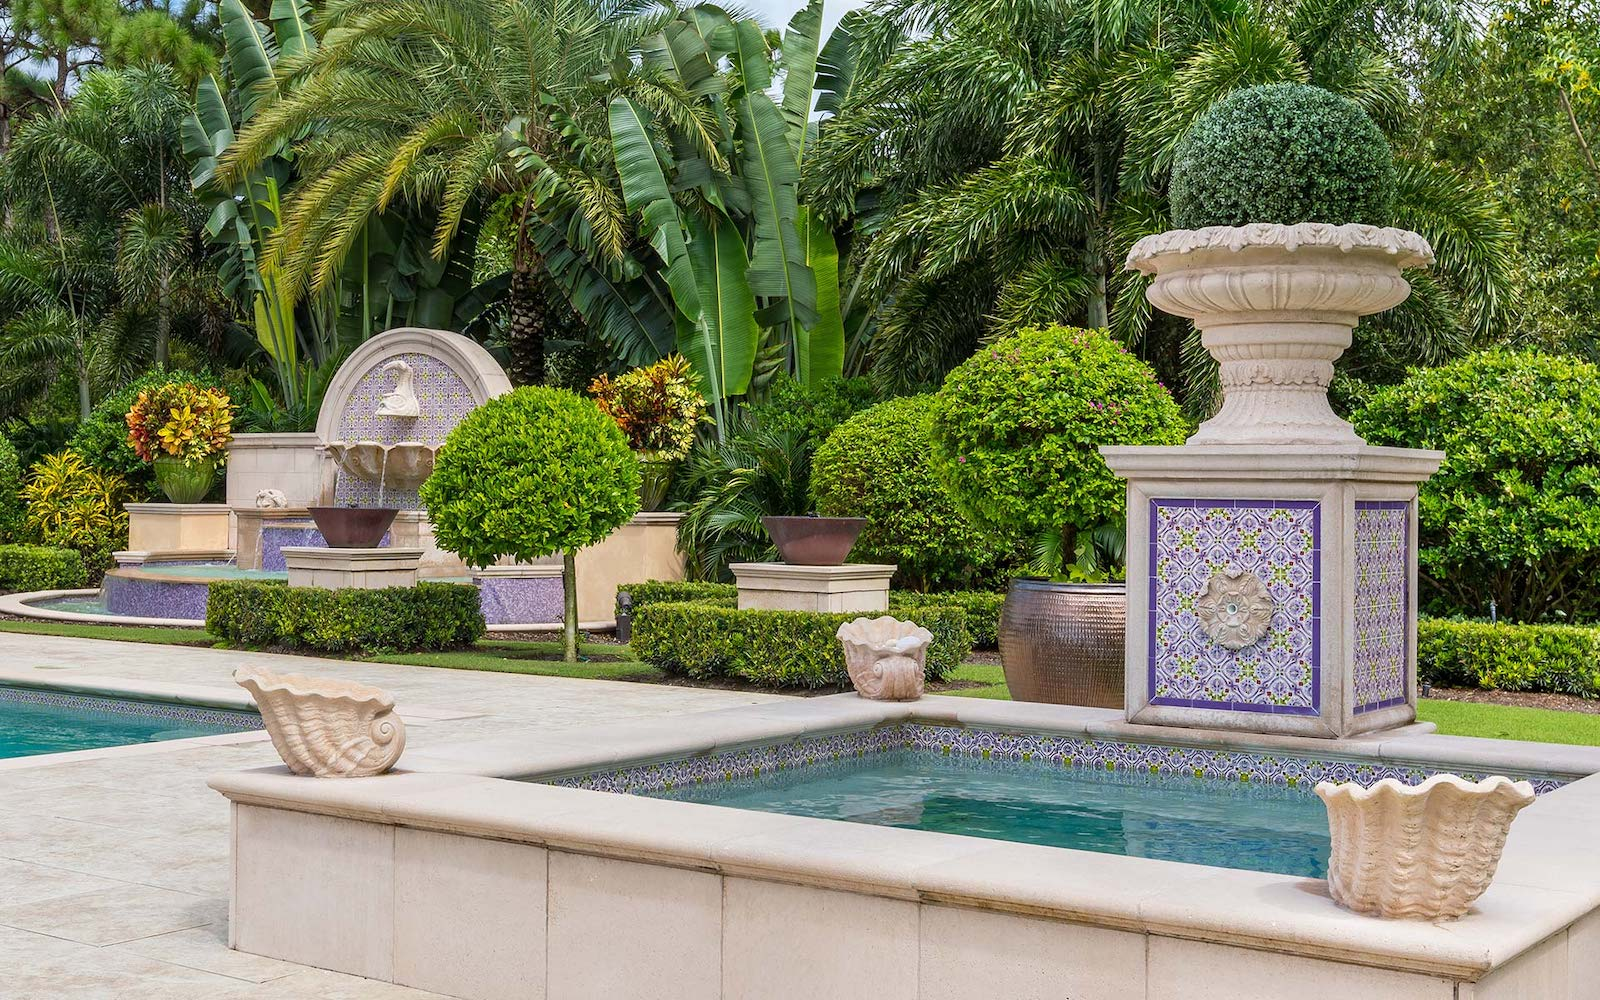 Mizner Tile Studio custom hand painted pool waterline tiles